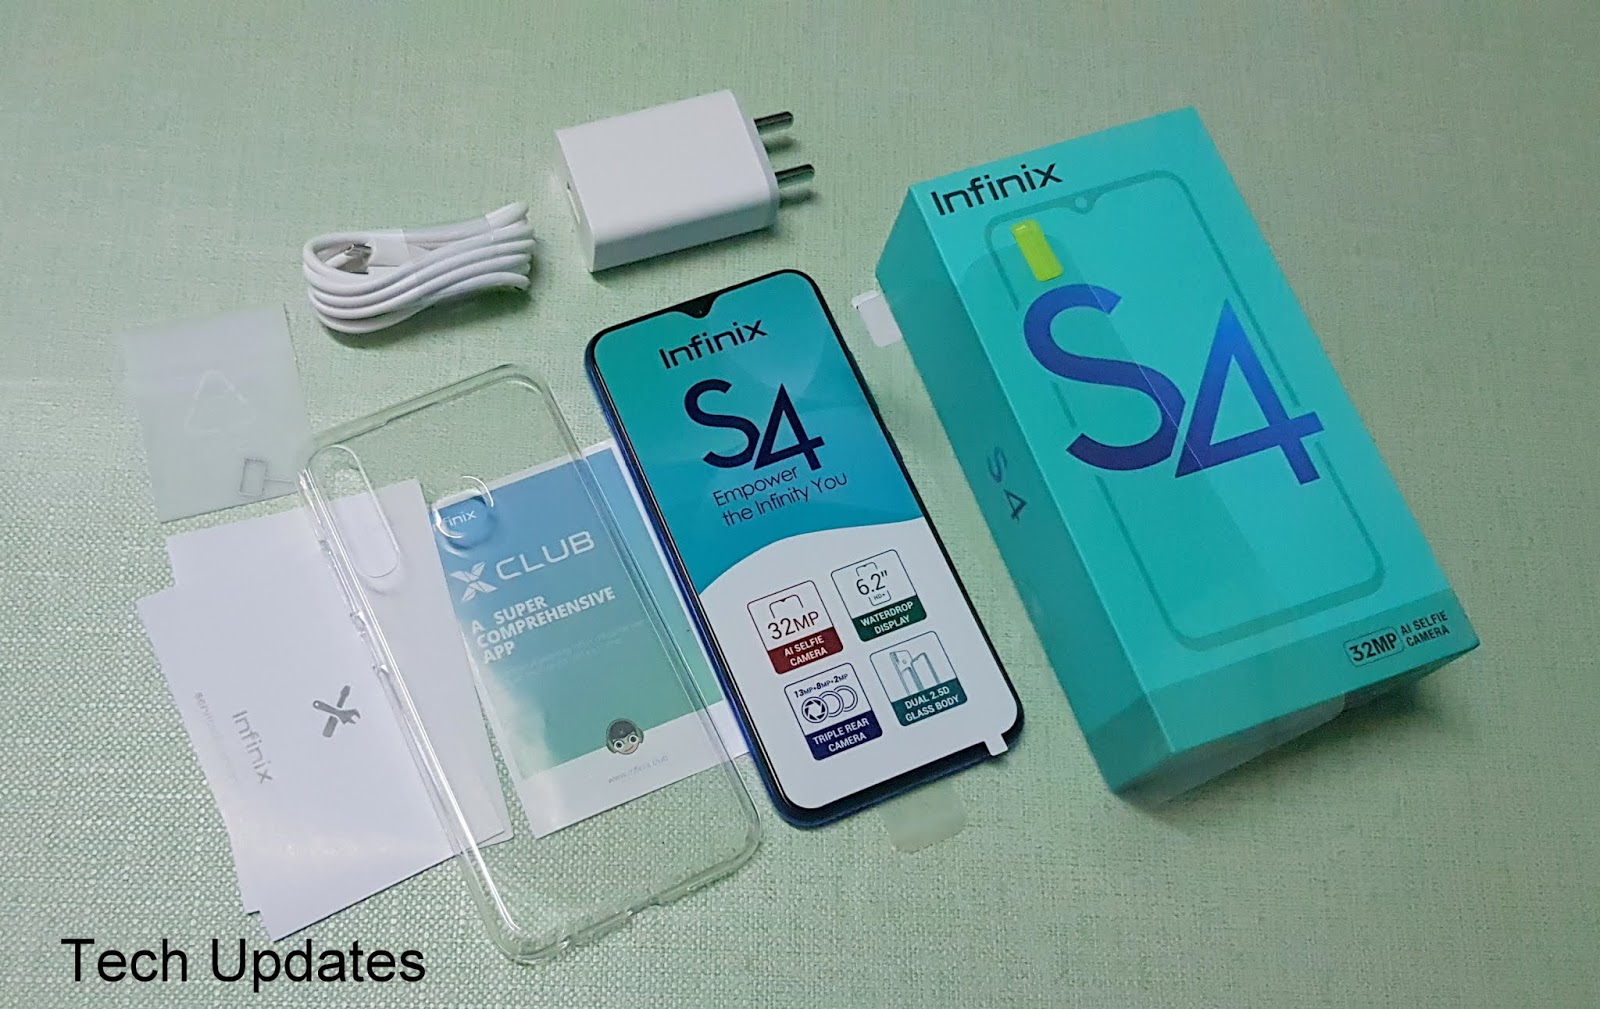 Infinix S4 Unboxing & Photo Gallery - Tech Updates